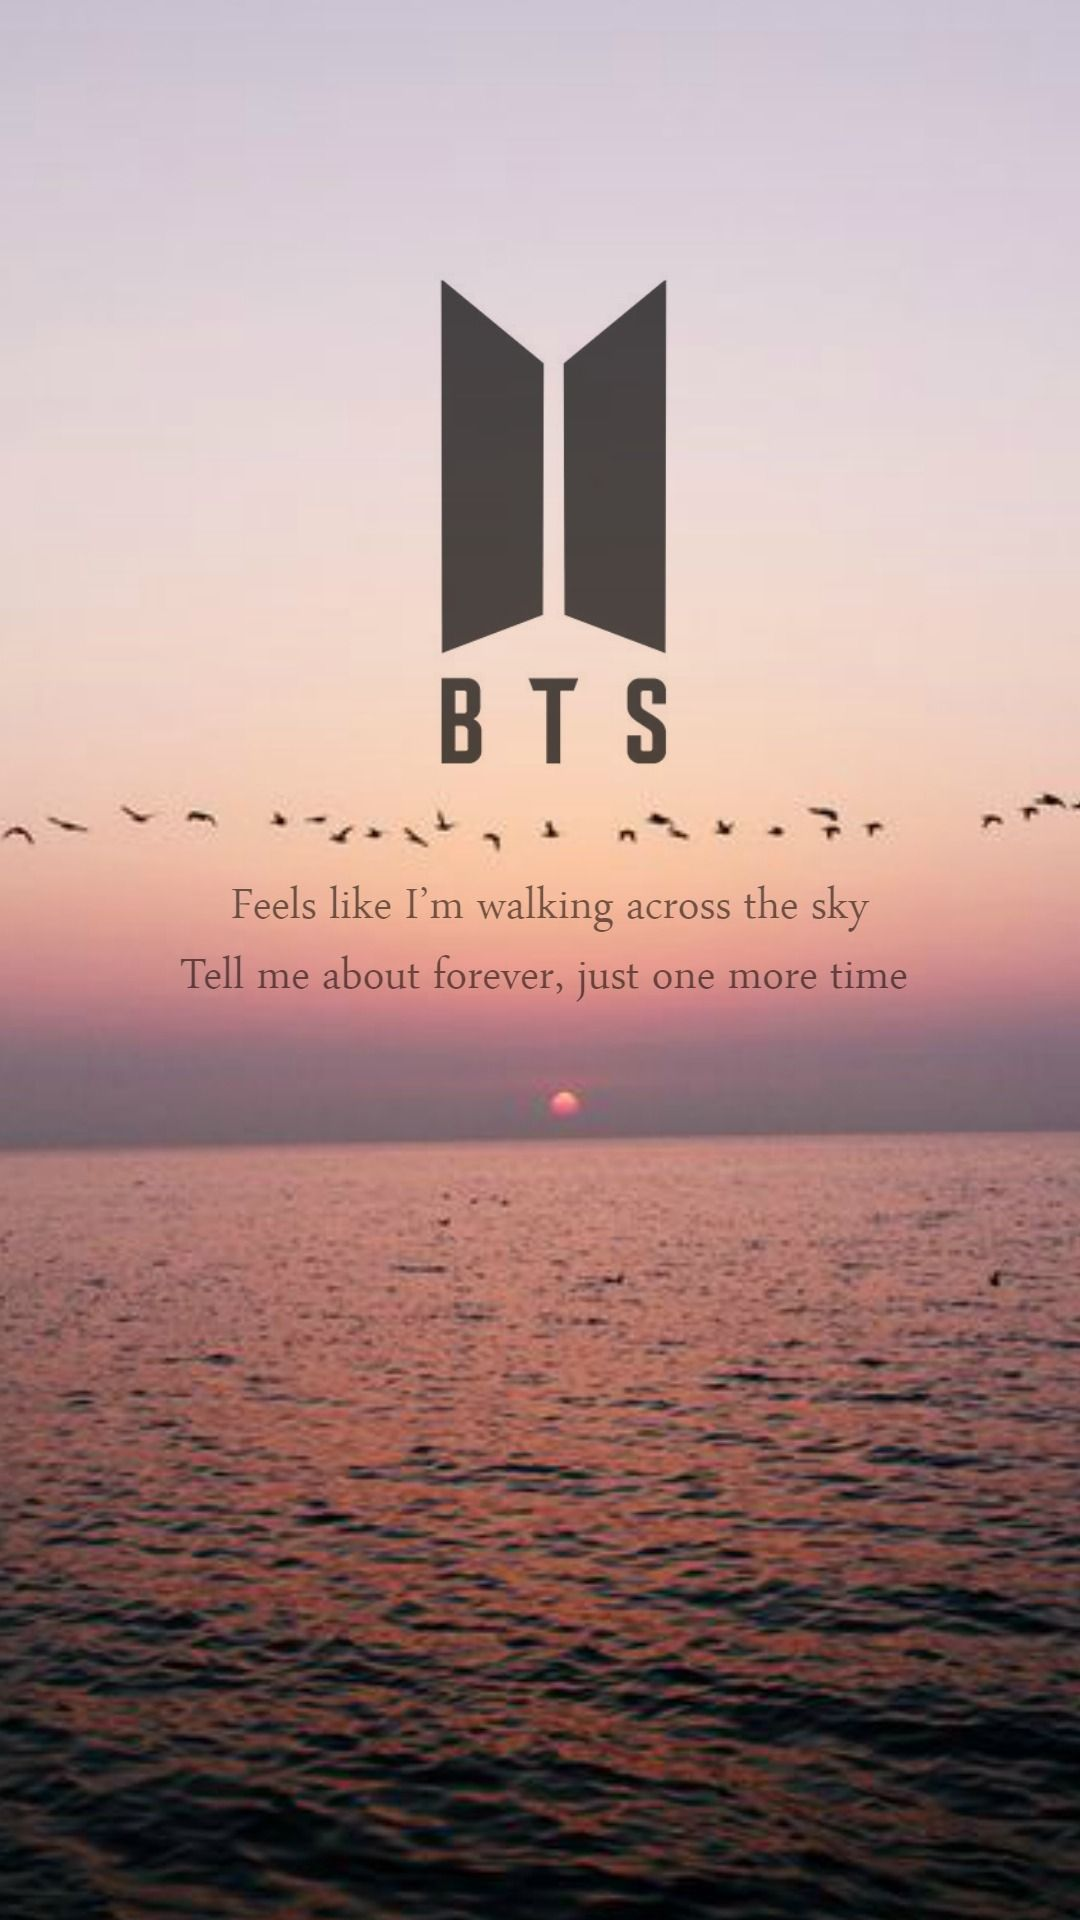 Pin by Namjoons_missright14 on BTS theories/wallpapers